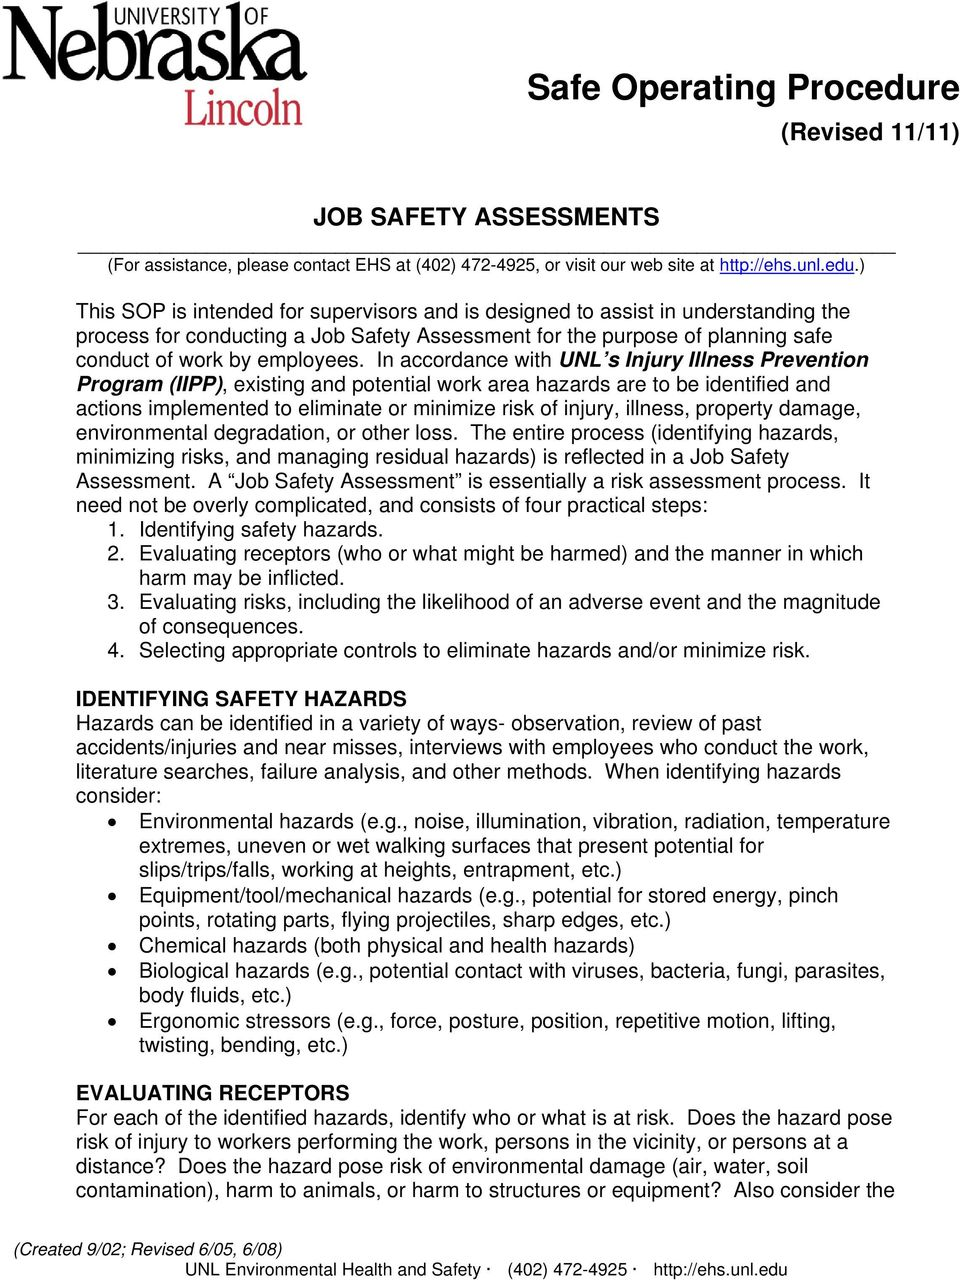 ) This SOP is intended for supervisors and is designed to assist in understanding the process for conducting a Job Safety Assessment for the purpose of planning safe conduct of work by employees.